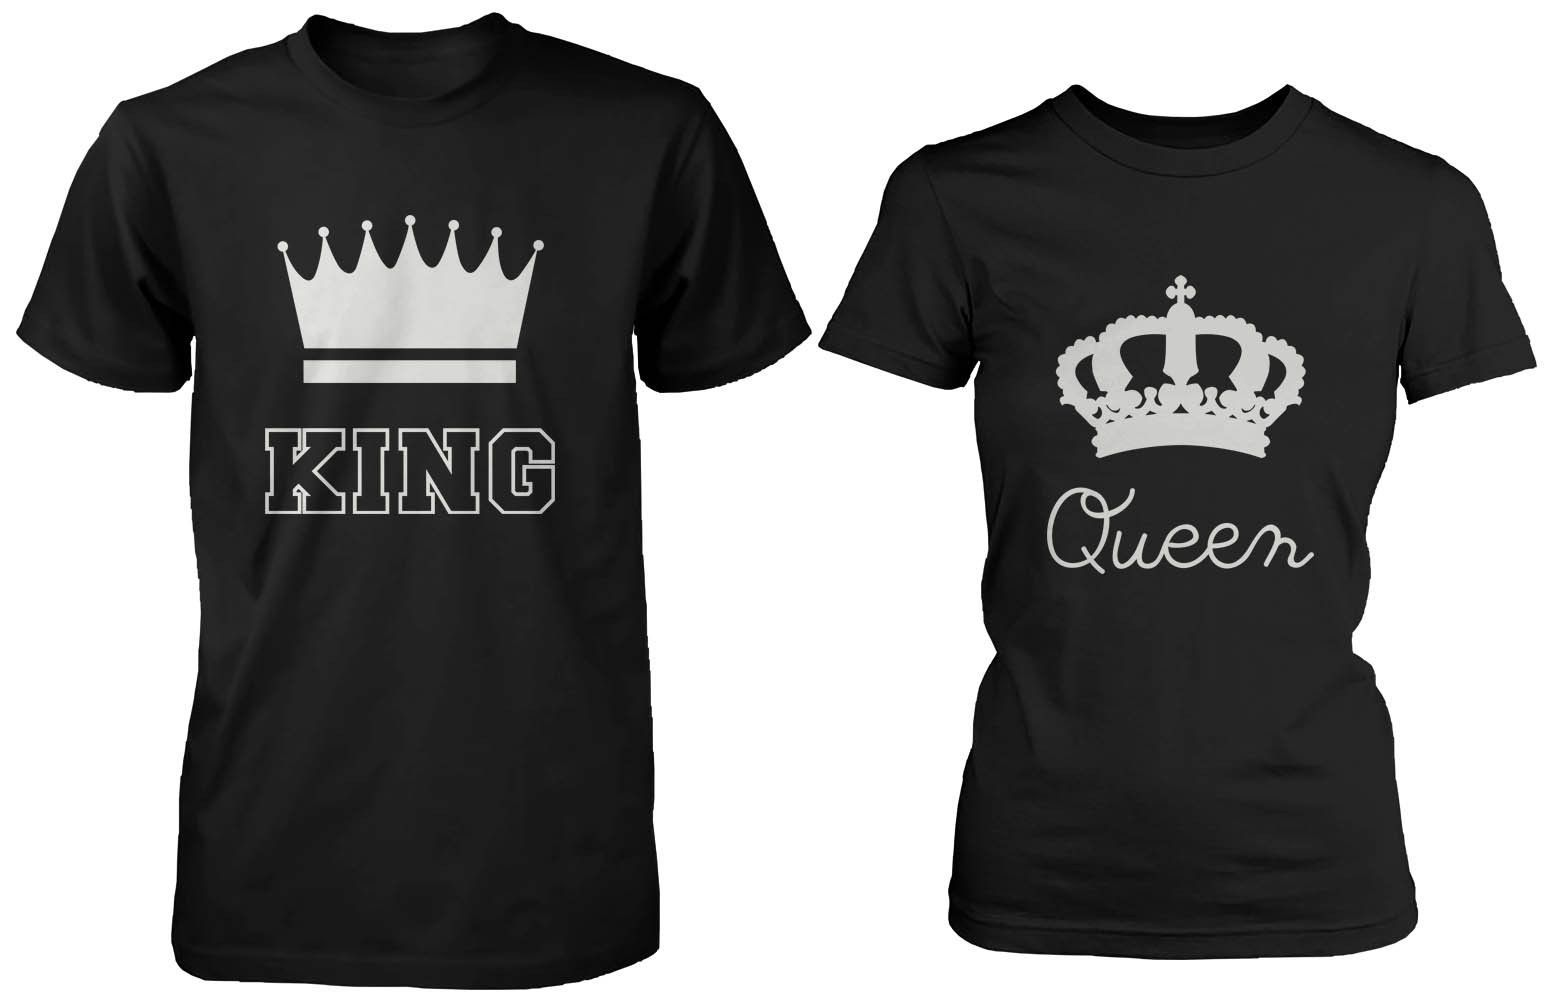 Cute matching couple shirts king and queen black cotton t for Best couple t shirt design